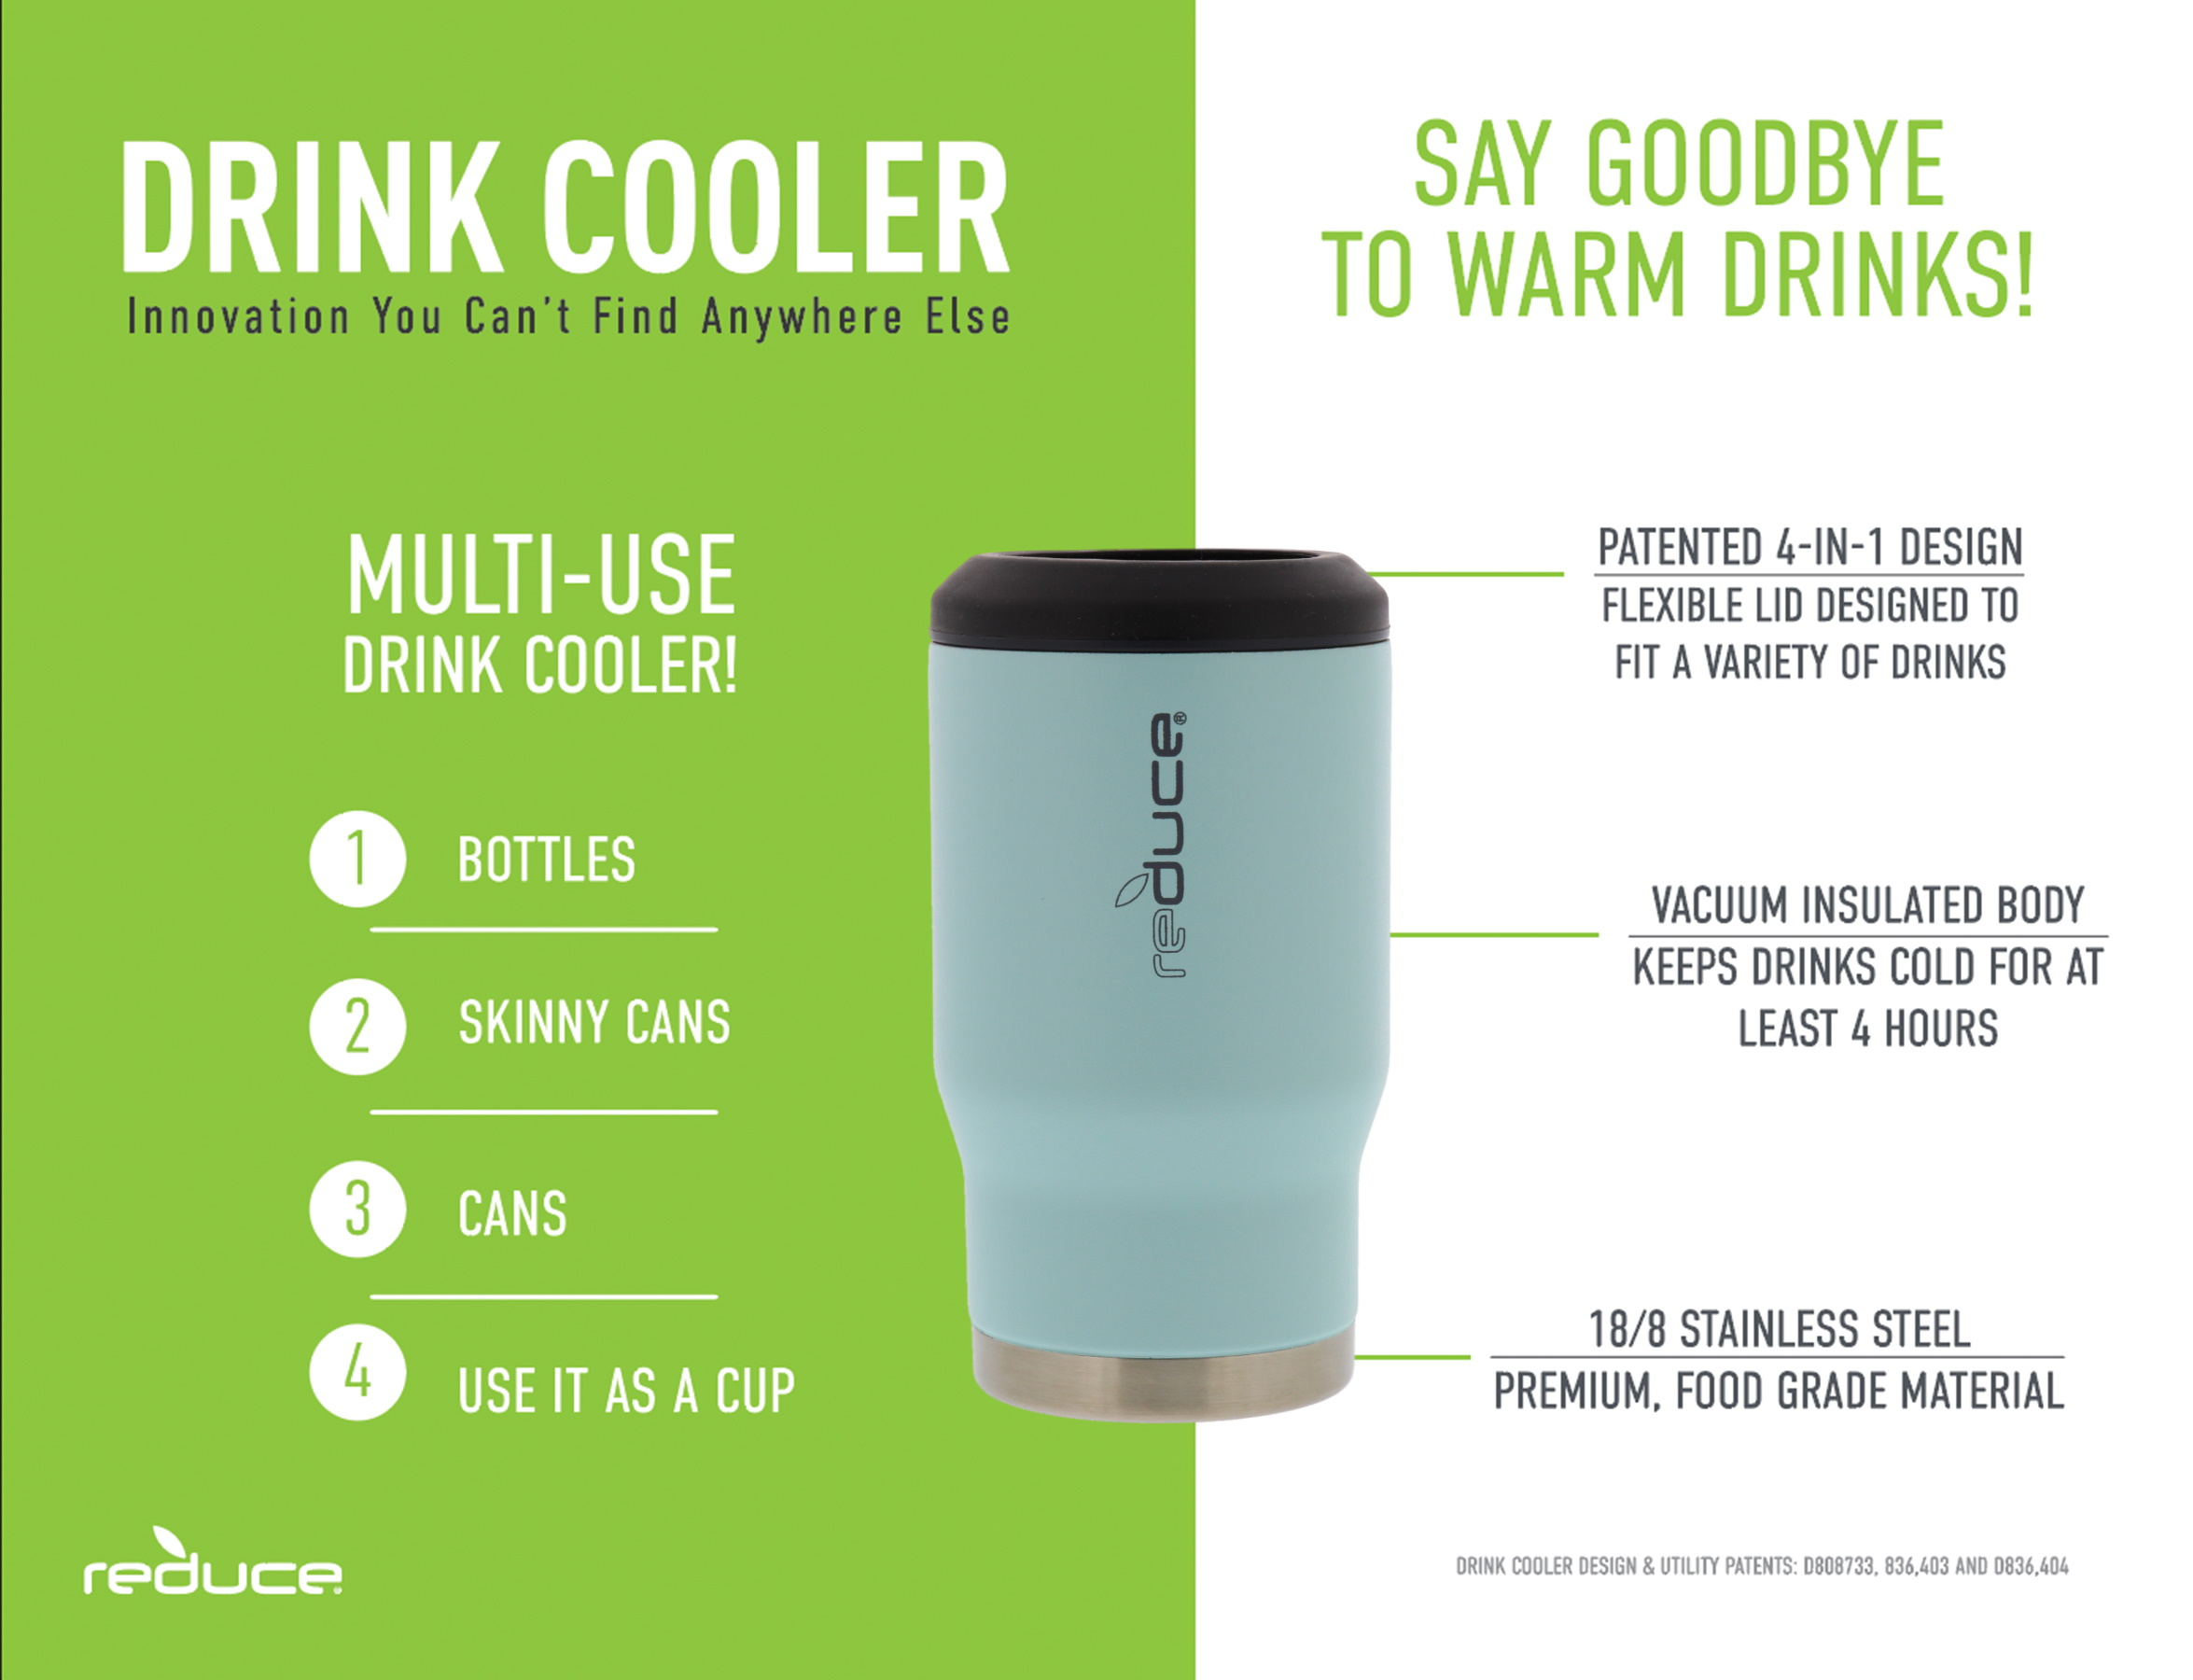 This Drink Cooler Keeps Bottles REDUCE 4-in-1 Stainless Steel Bottle and Can Insulator Gold Perfect for Outdoor Drinking Cans Skinny Cans and Mixed Drinks Ice Cold Sweat-Free